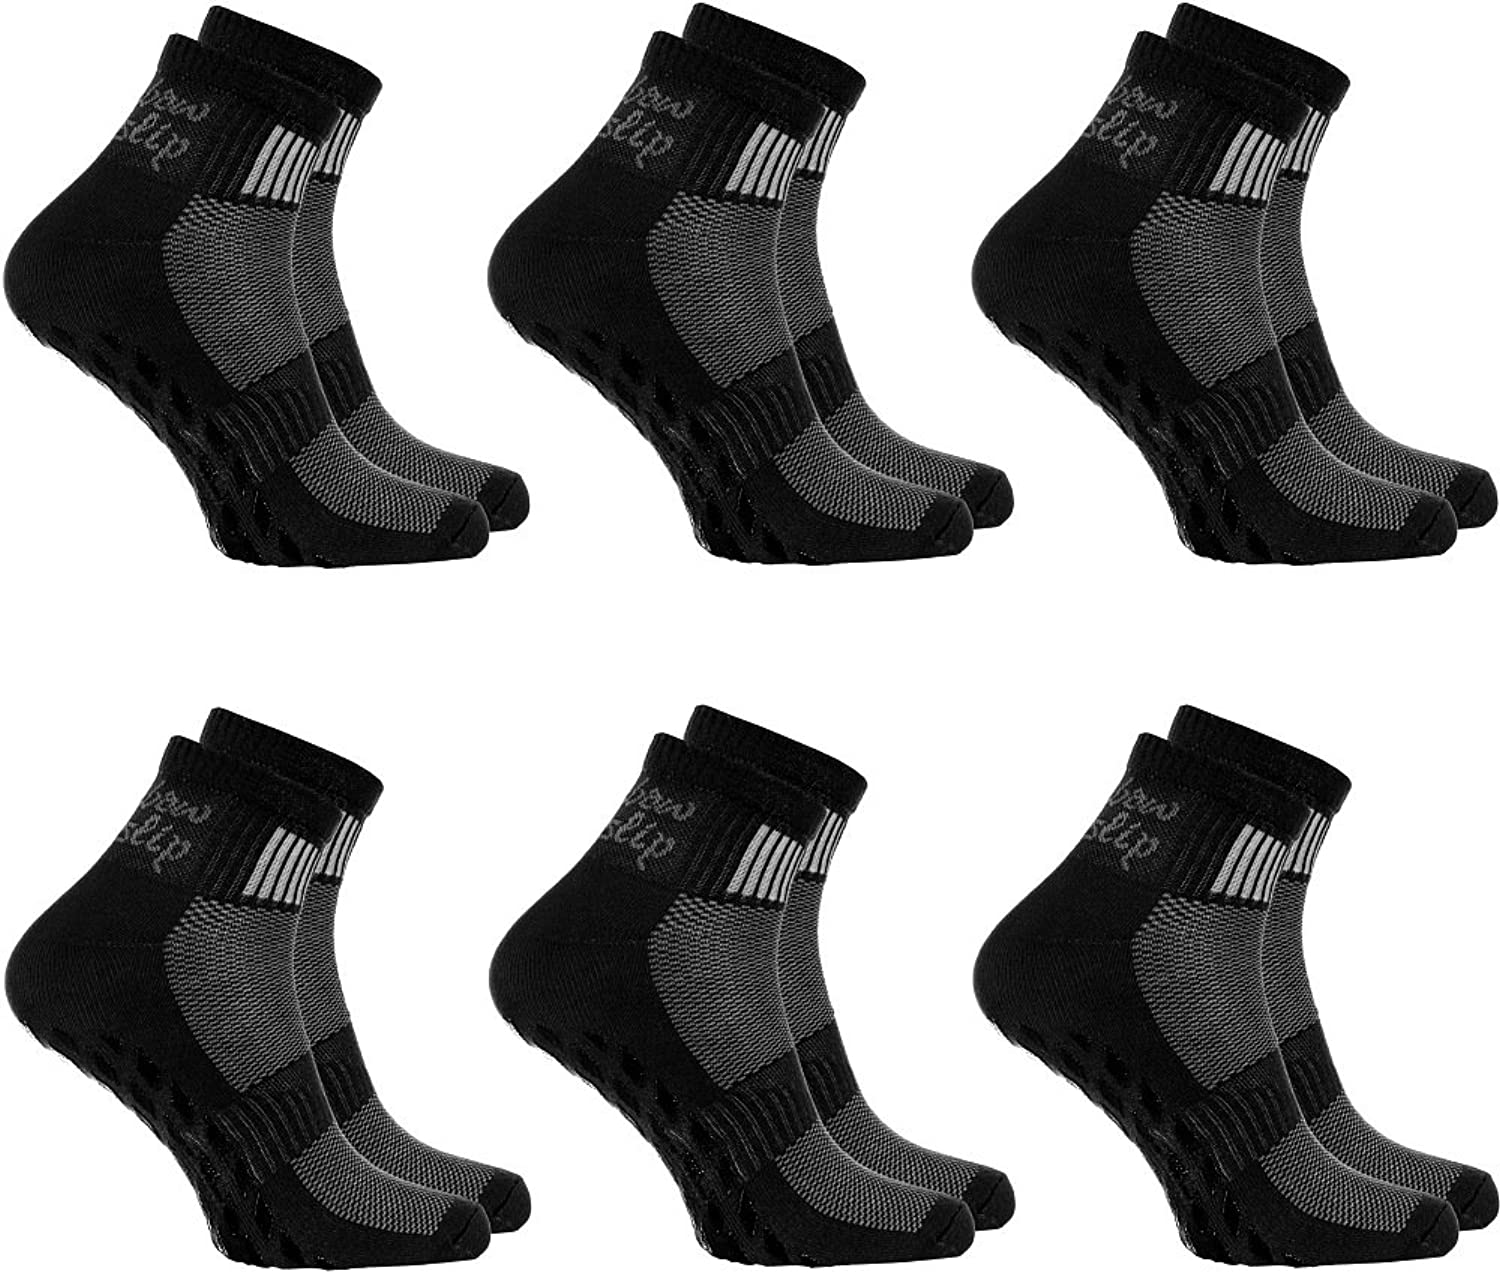 2,4,or 6 pairs of Black Nonslip Socks ABS, Sports  Yoga, Pilates, all sizes